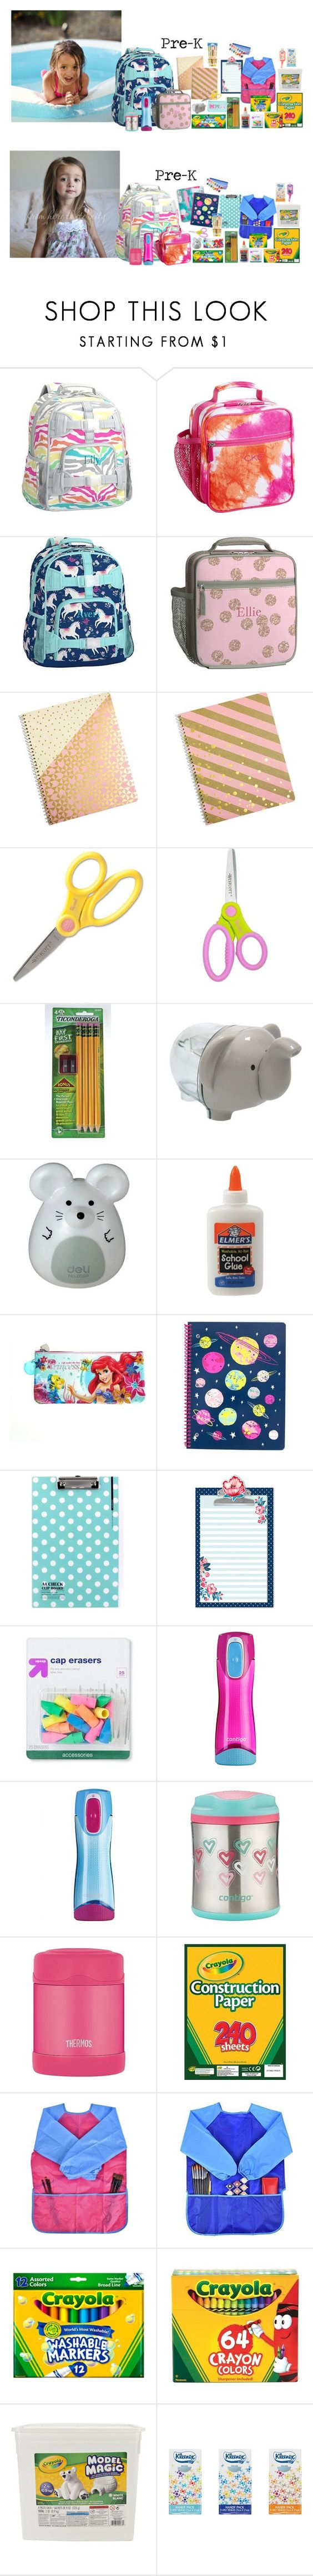 """""""Brooklyn & Britton's Backpacks"""" by my-creative-mess ❤ liked on Polyvore featuring Gymboree, Disney, Contigo, Ignite, Thermos and Crayola"""